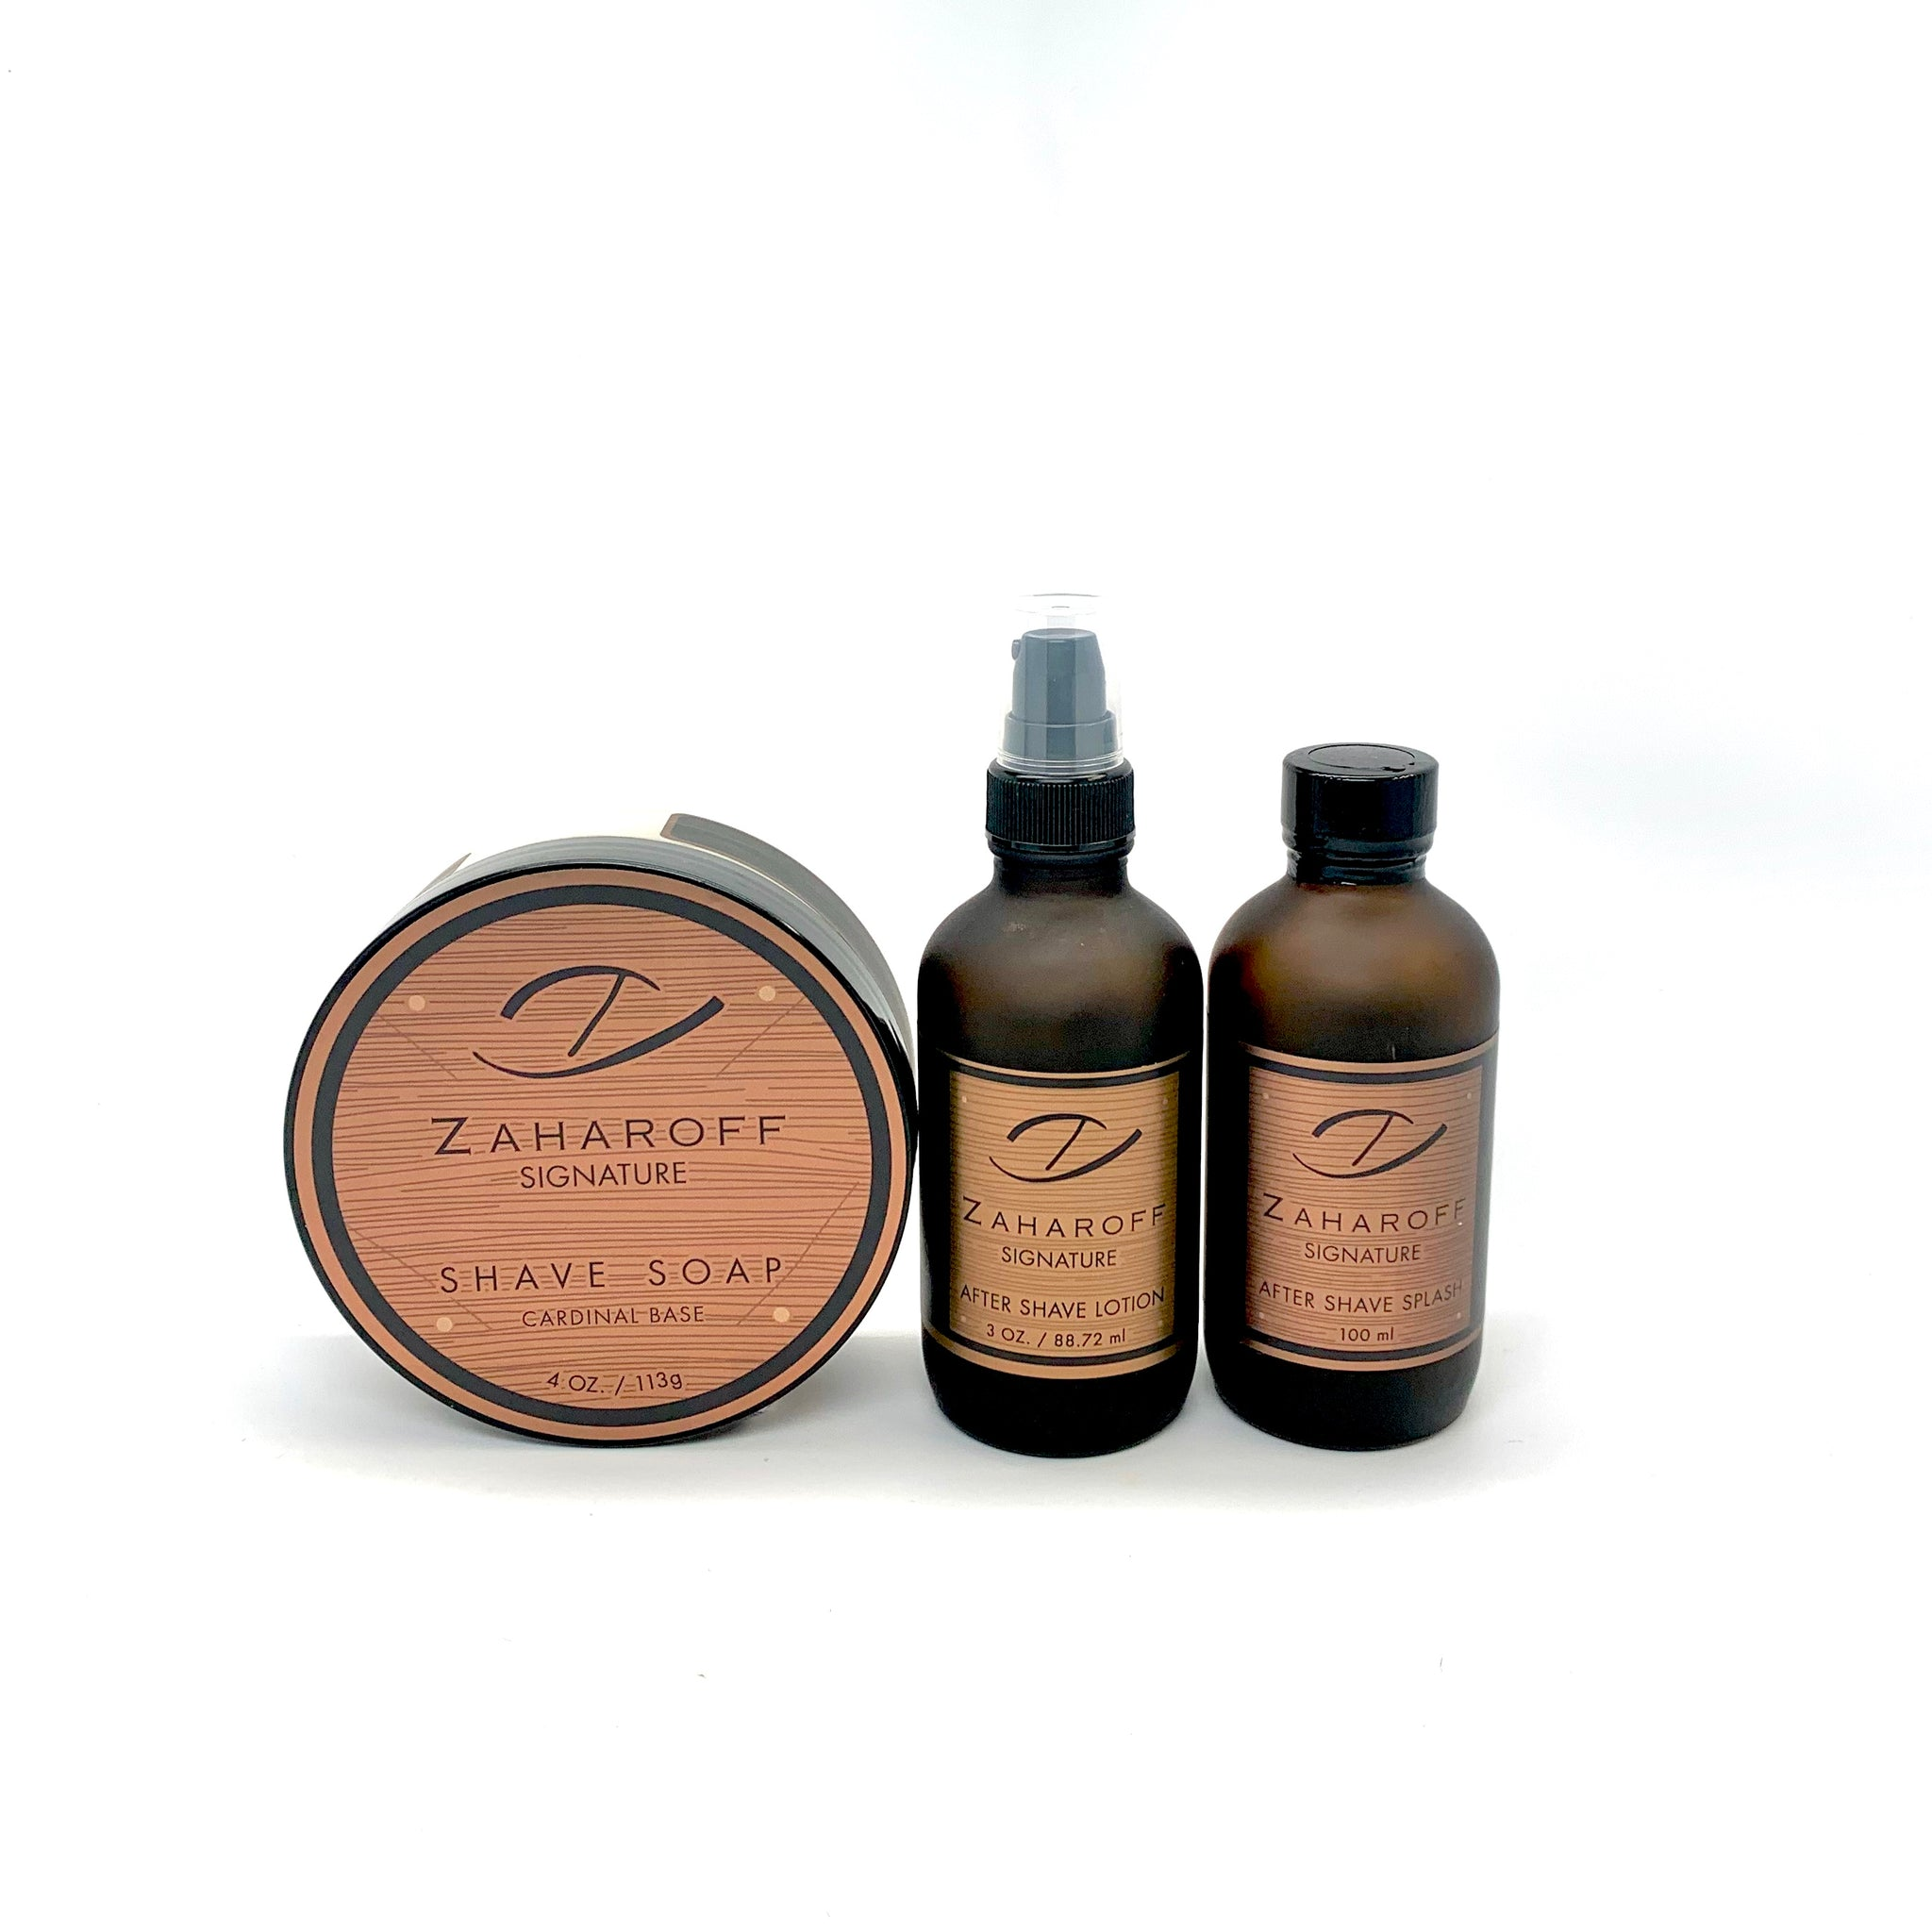 Zaharoff Signature Shave Soap +Aftershave Splash  + Aftershave Lotion Set